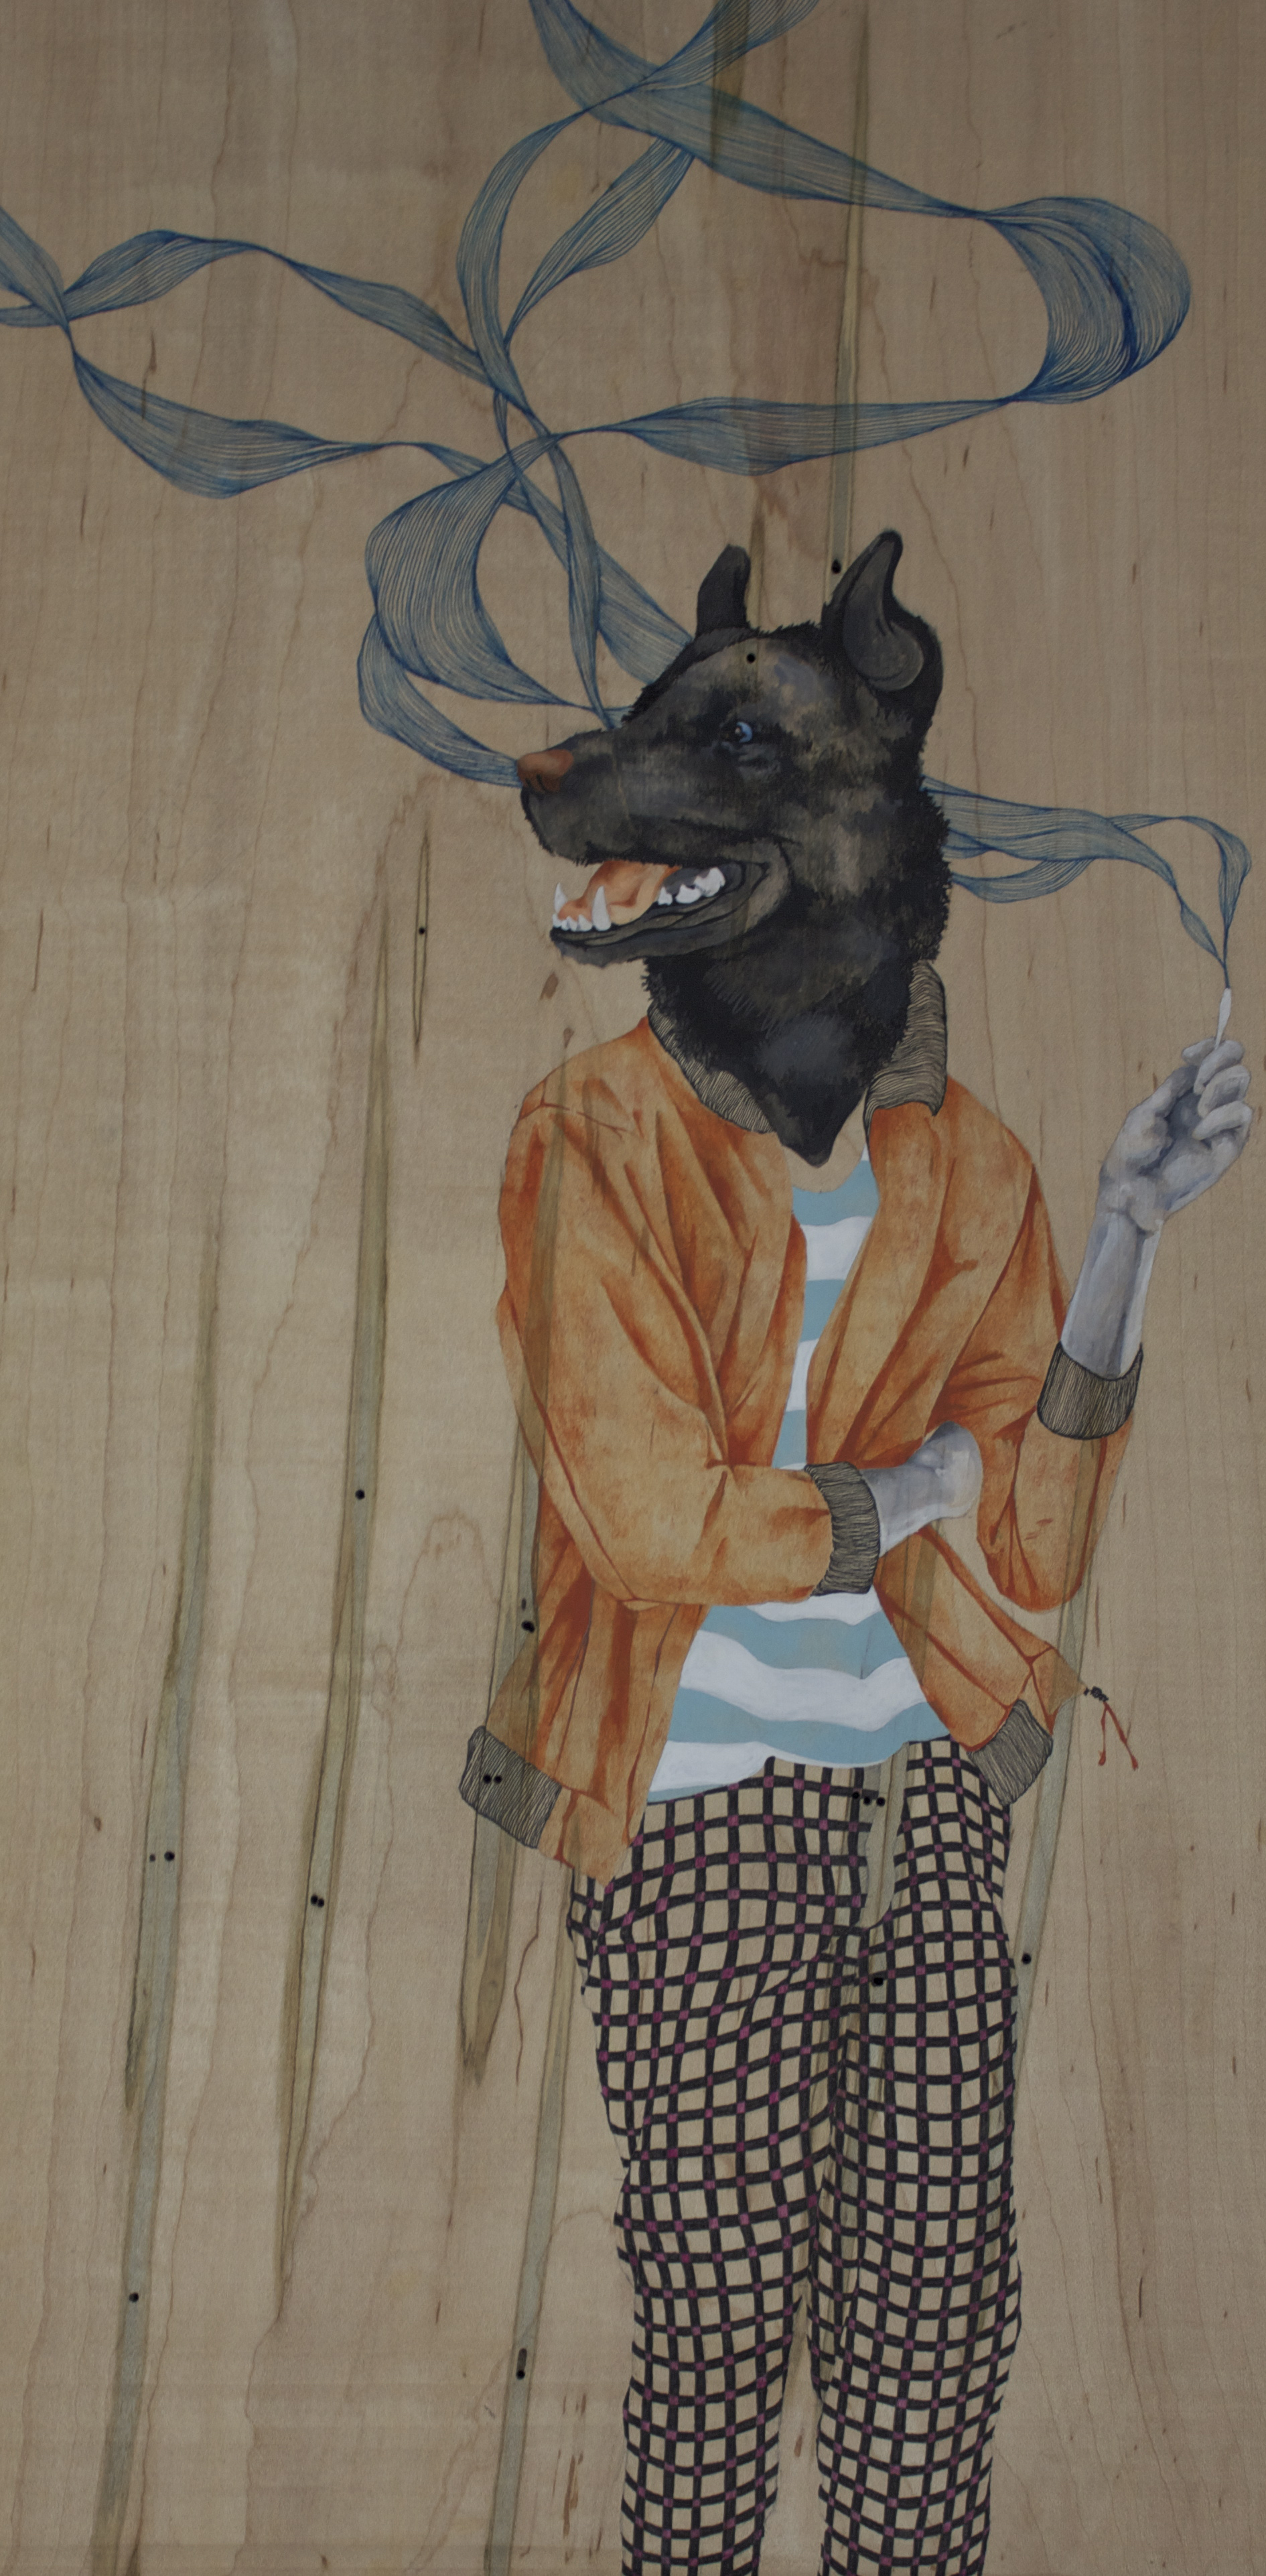 """Vice, enamel and pen on panel, 12""""x24"""" 2012."""